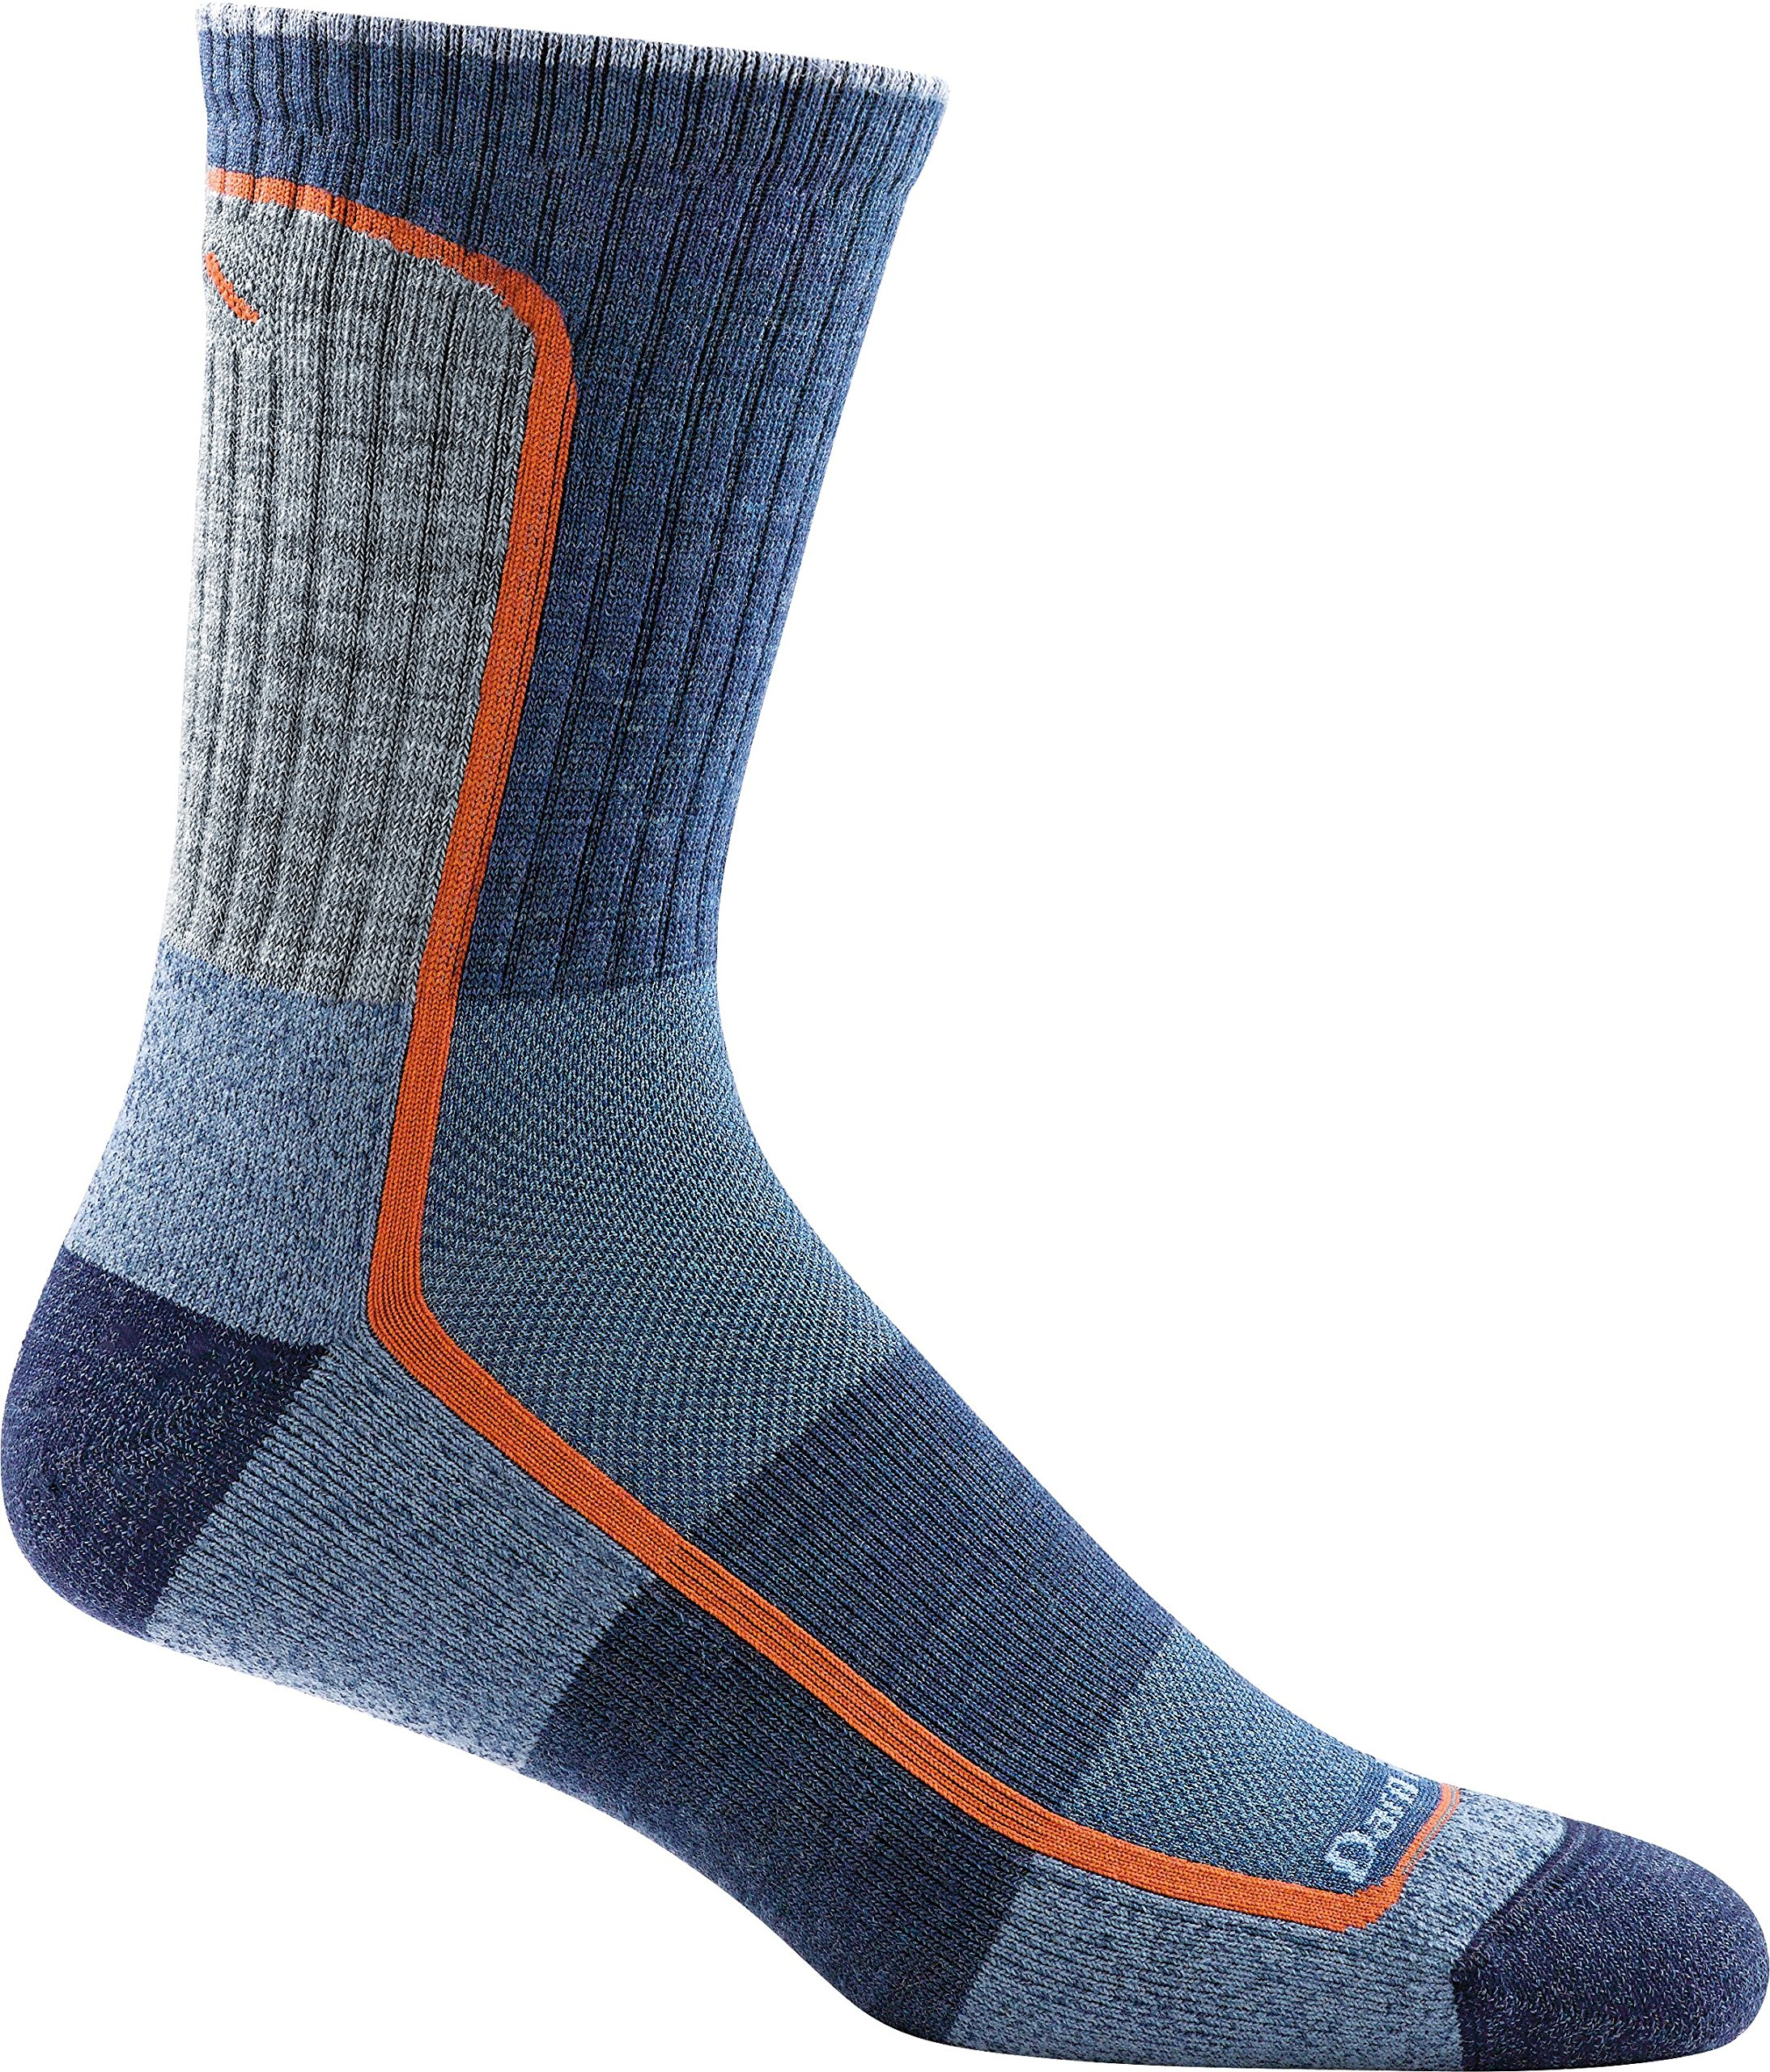 Darn Tough 1913 Men's Merino Wool Light Hiker Micro Crew Light Cushion Socks, Denim, Medium - 6 Pack Special by Darn Tough US